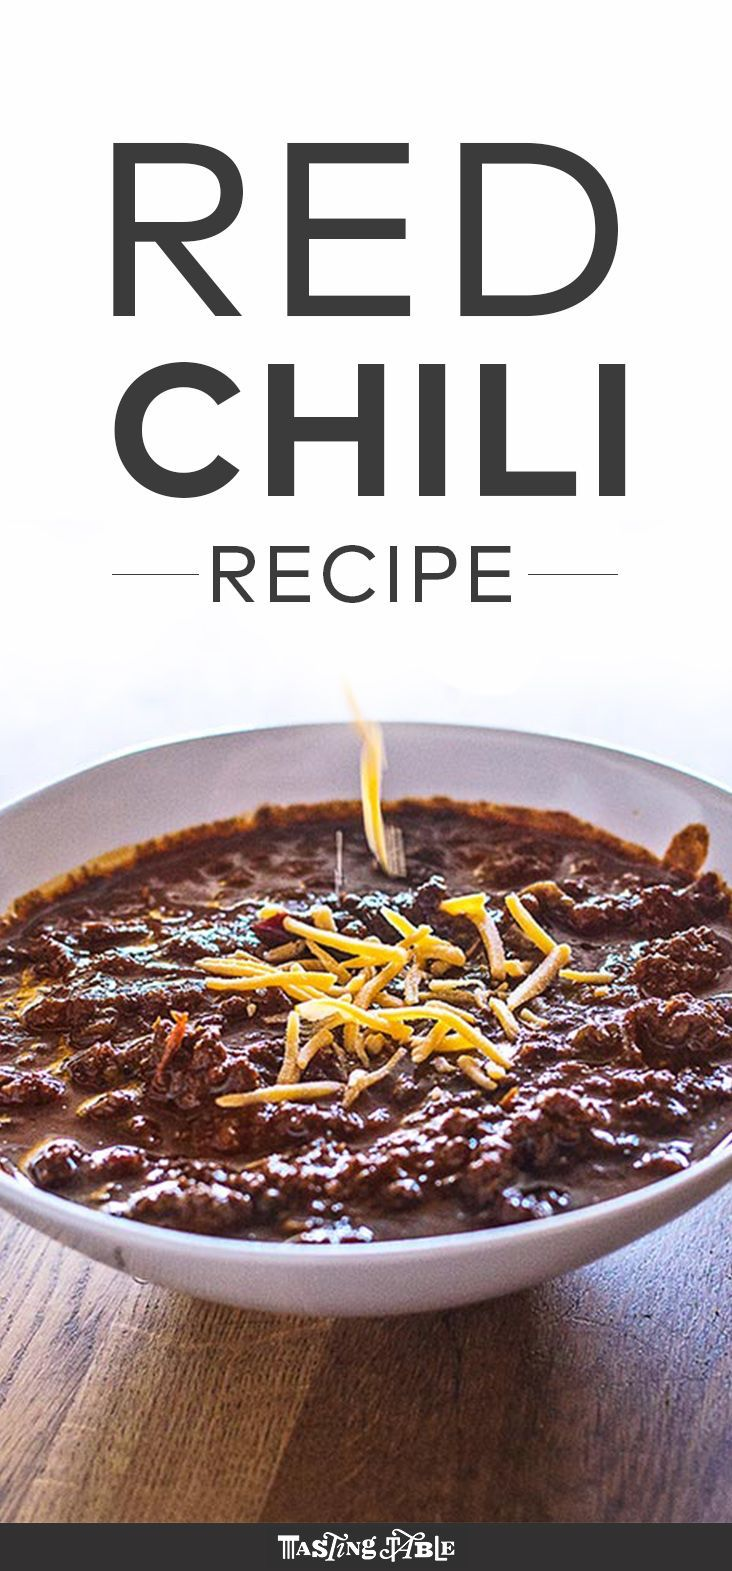 Red Chili Texas Red Chili - Javelina's Richard Caruso shares his recipe for the ultimate Tex-Mex comfort food. Learn the secret spice blend to make a rich and spicy Tex-Mex staple: Chili.Texas Red Chili - Javelina's Richard Caruso shares his recipe for the ultimate Tex-Mex comfort food. Learn the secret spice blend to make a rich and spicy Tex-Mex staple: Chili.